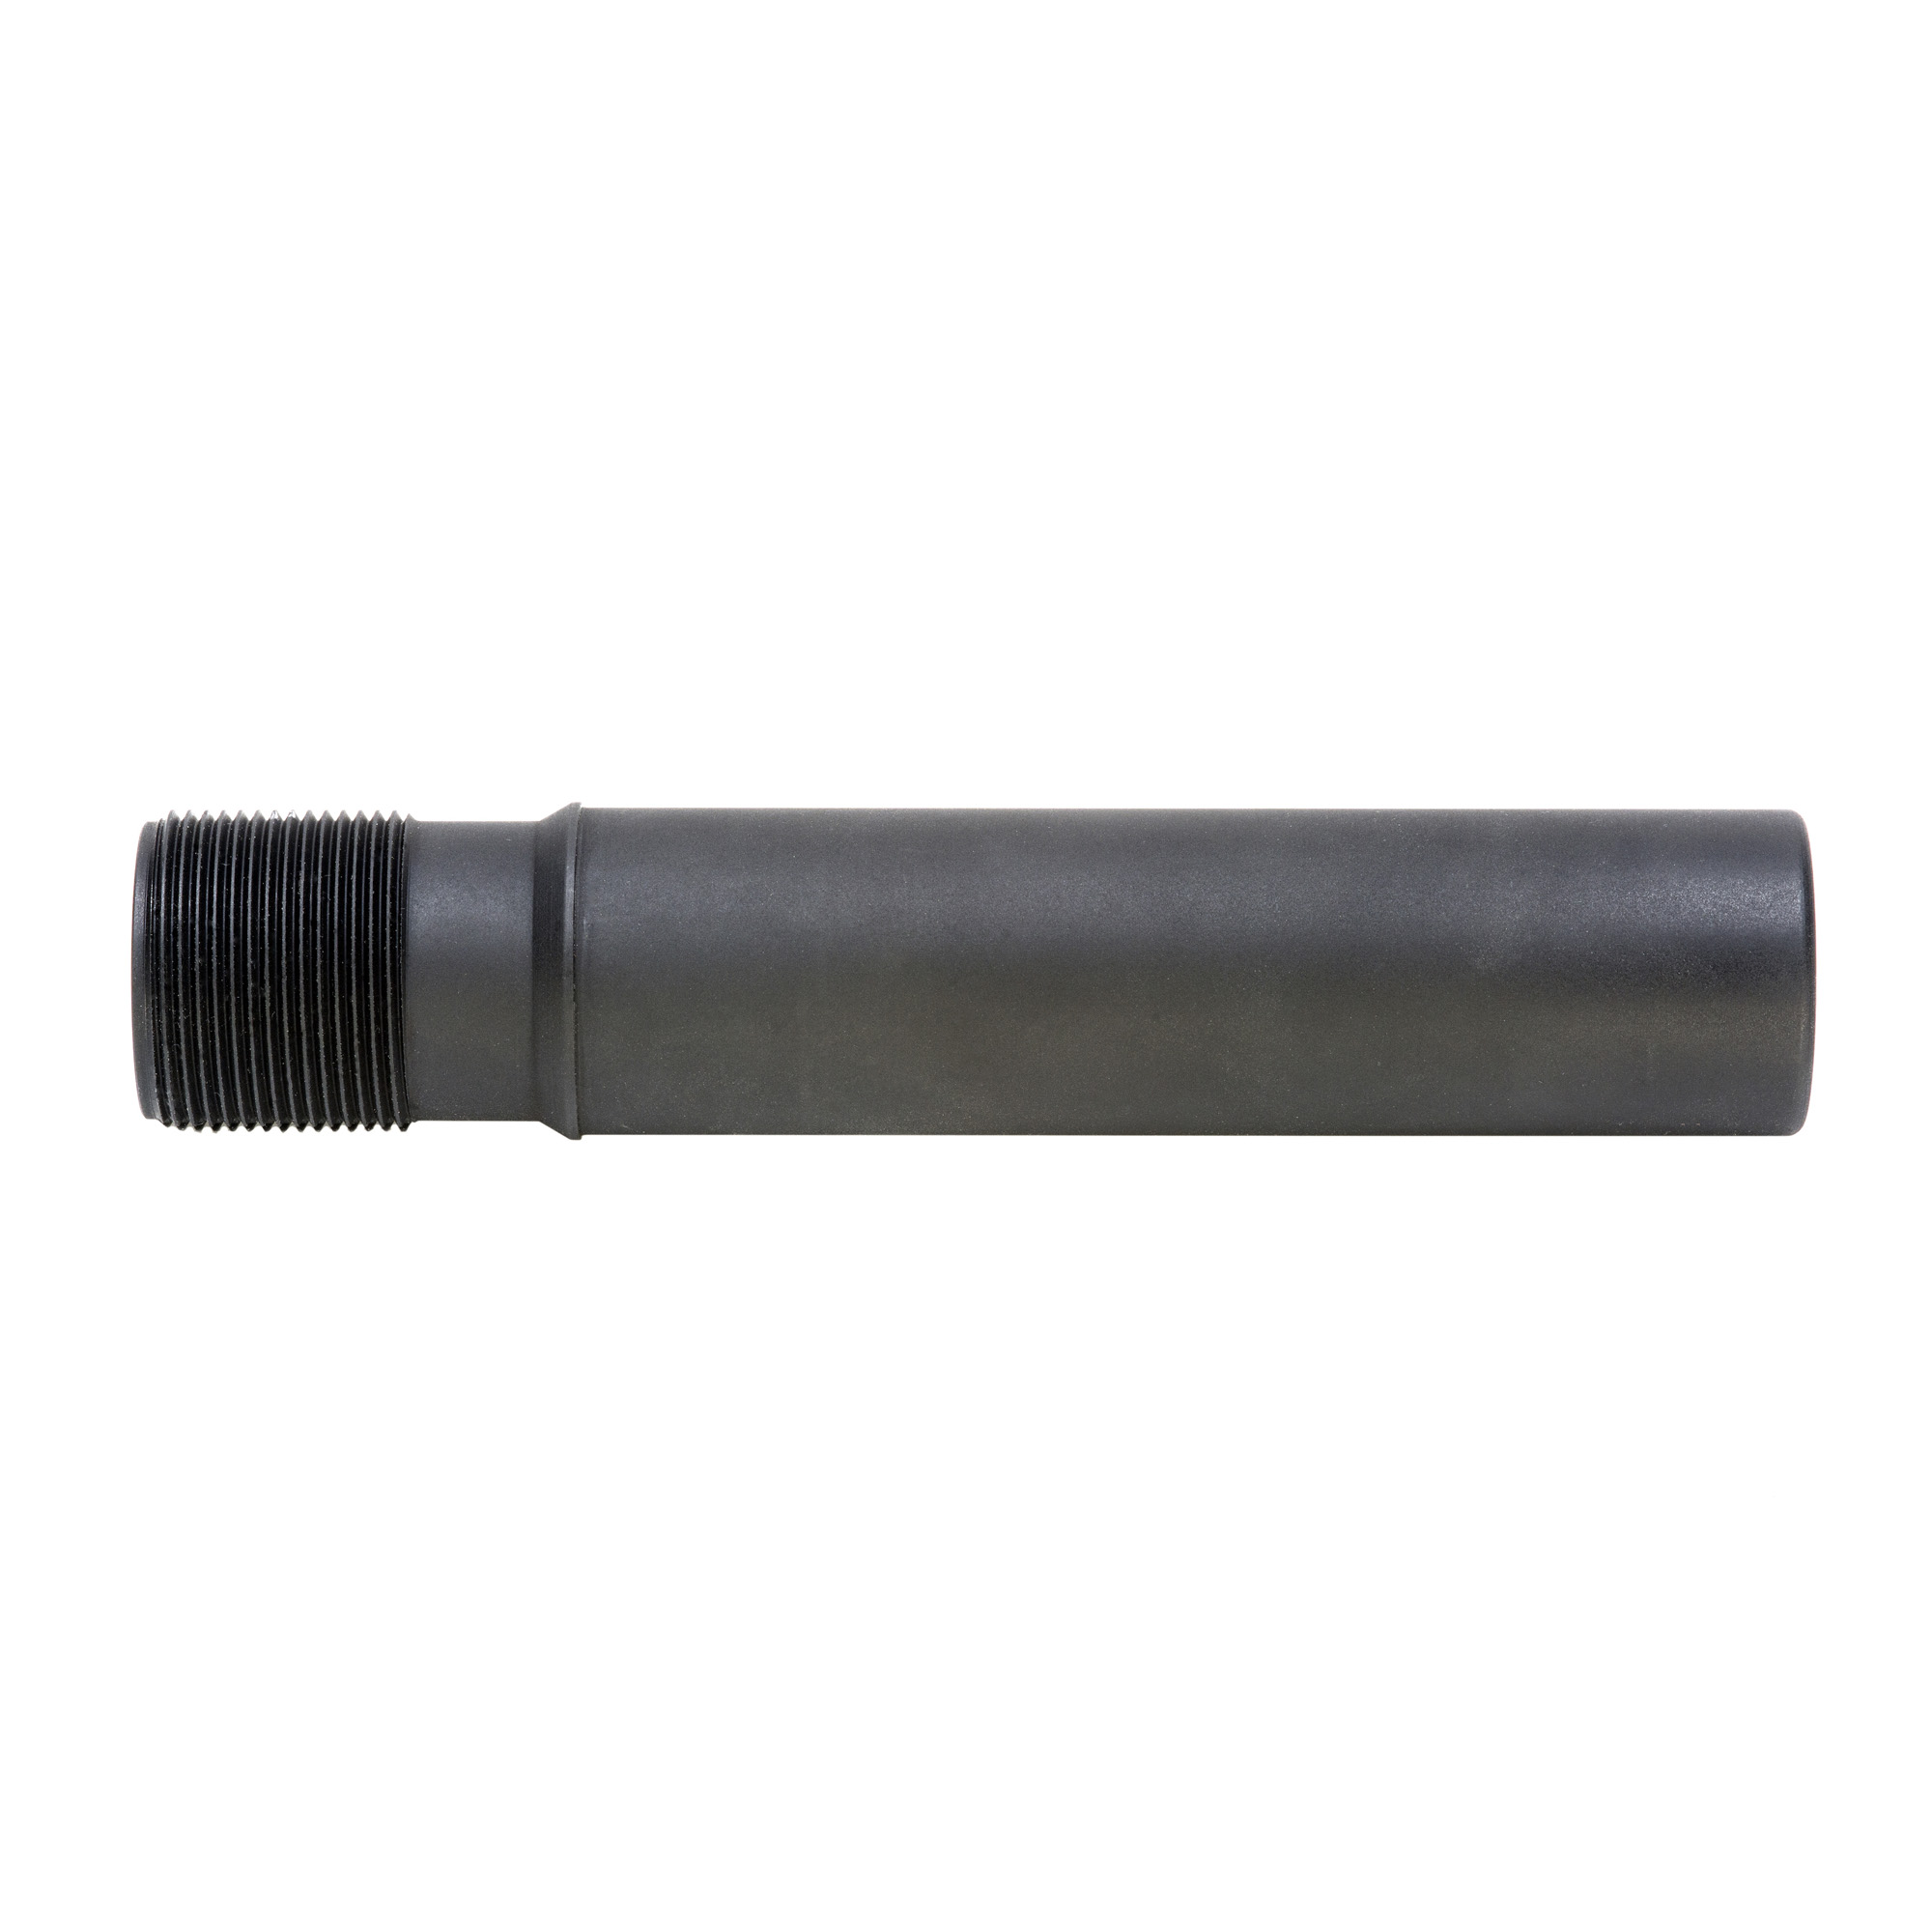 """SB Tactical OPNT Open Pistol Buffer Tube is a non-functioning"""" short tube for blowback/piston builds that is designed to minimize SB Tactical brace rotation and slippage."""